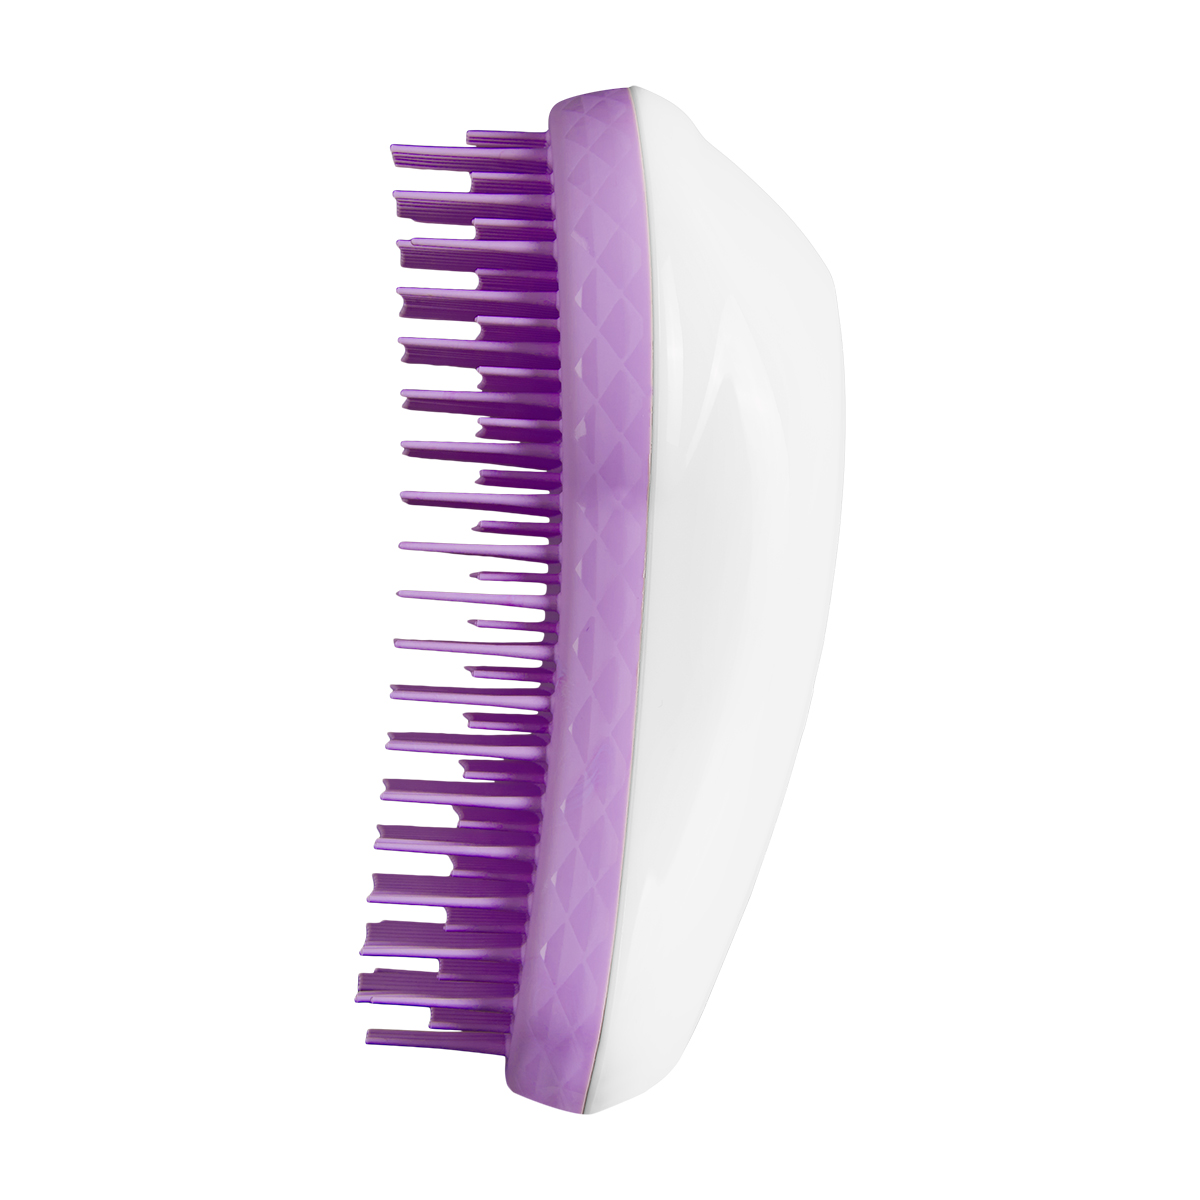 Расческа Tangle Teezer Thick & Curly Pure Violet